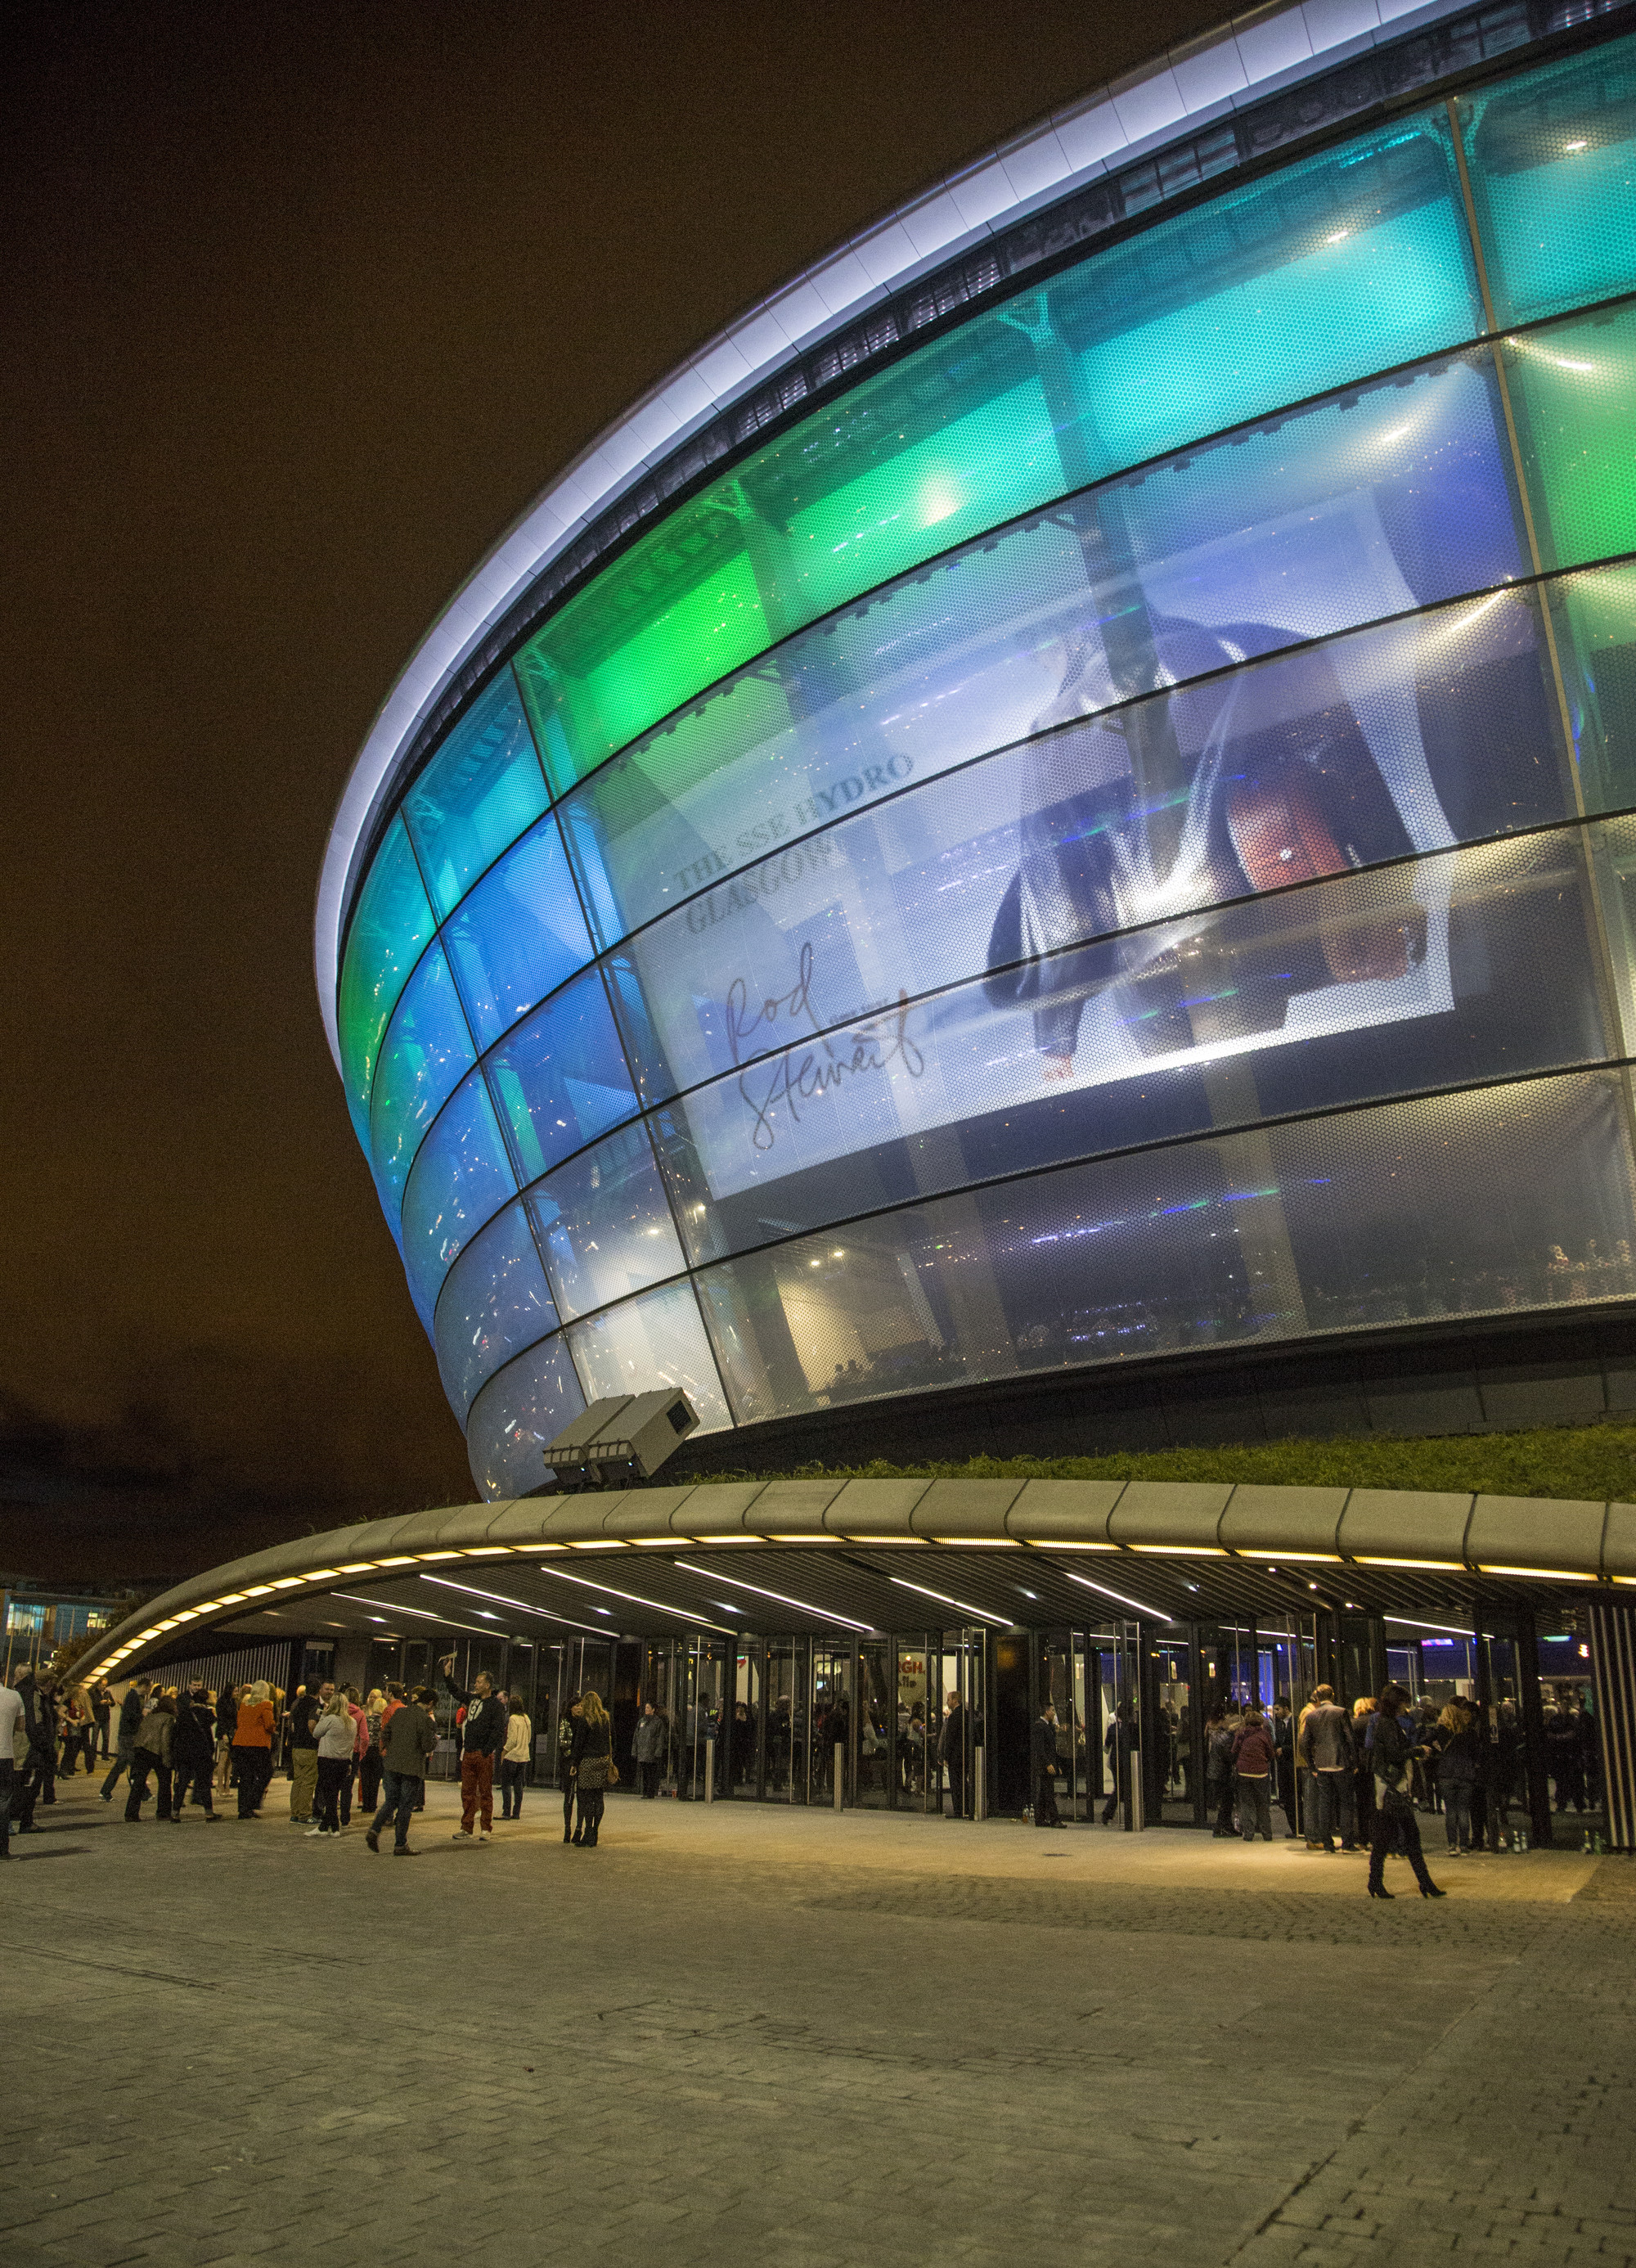 Foster partners sse hydro arena features translucent skin innovative seating system